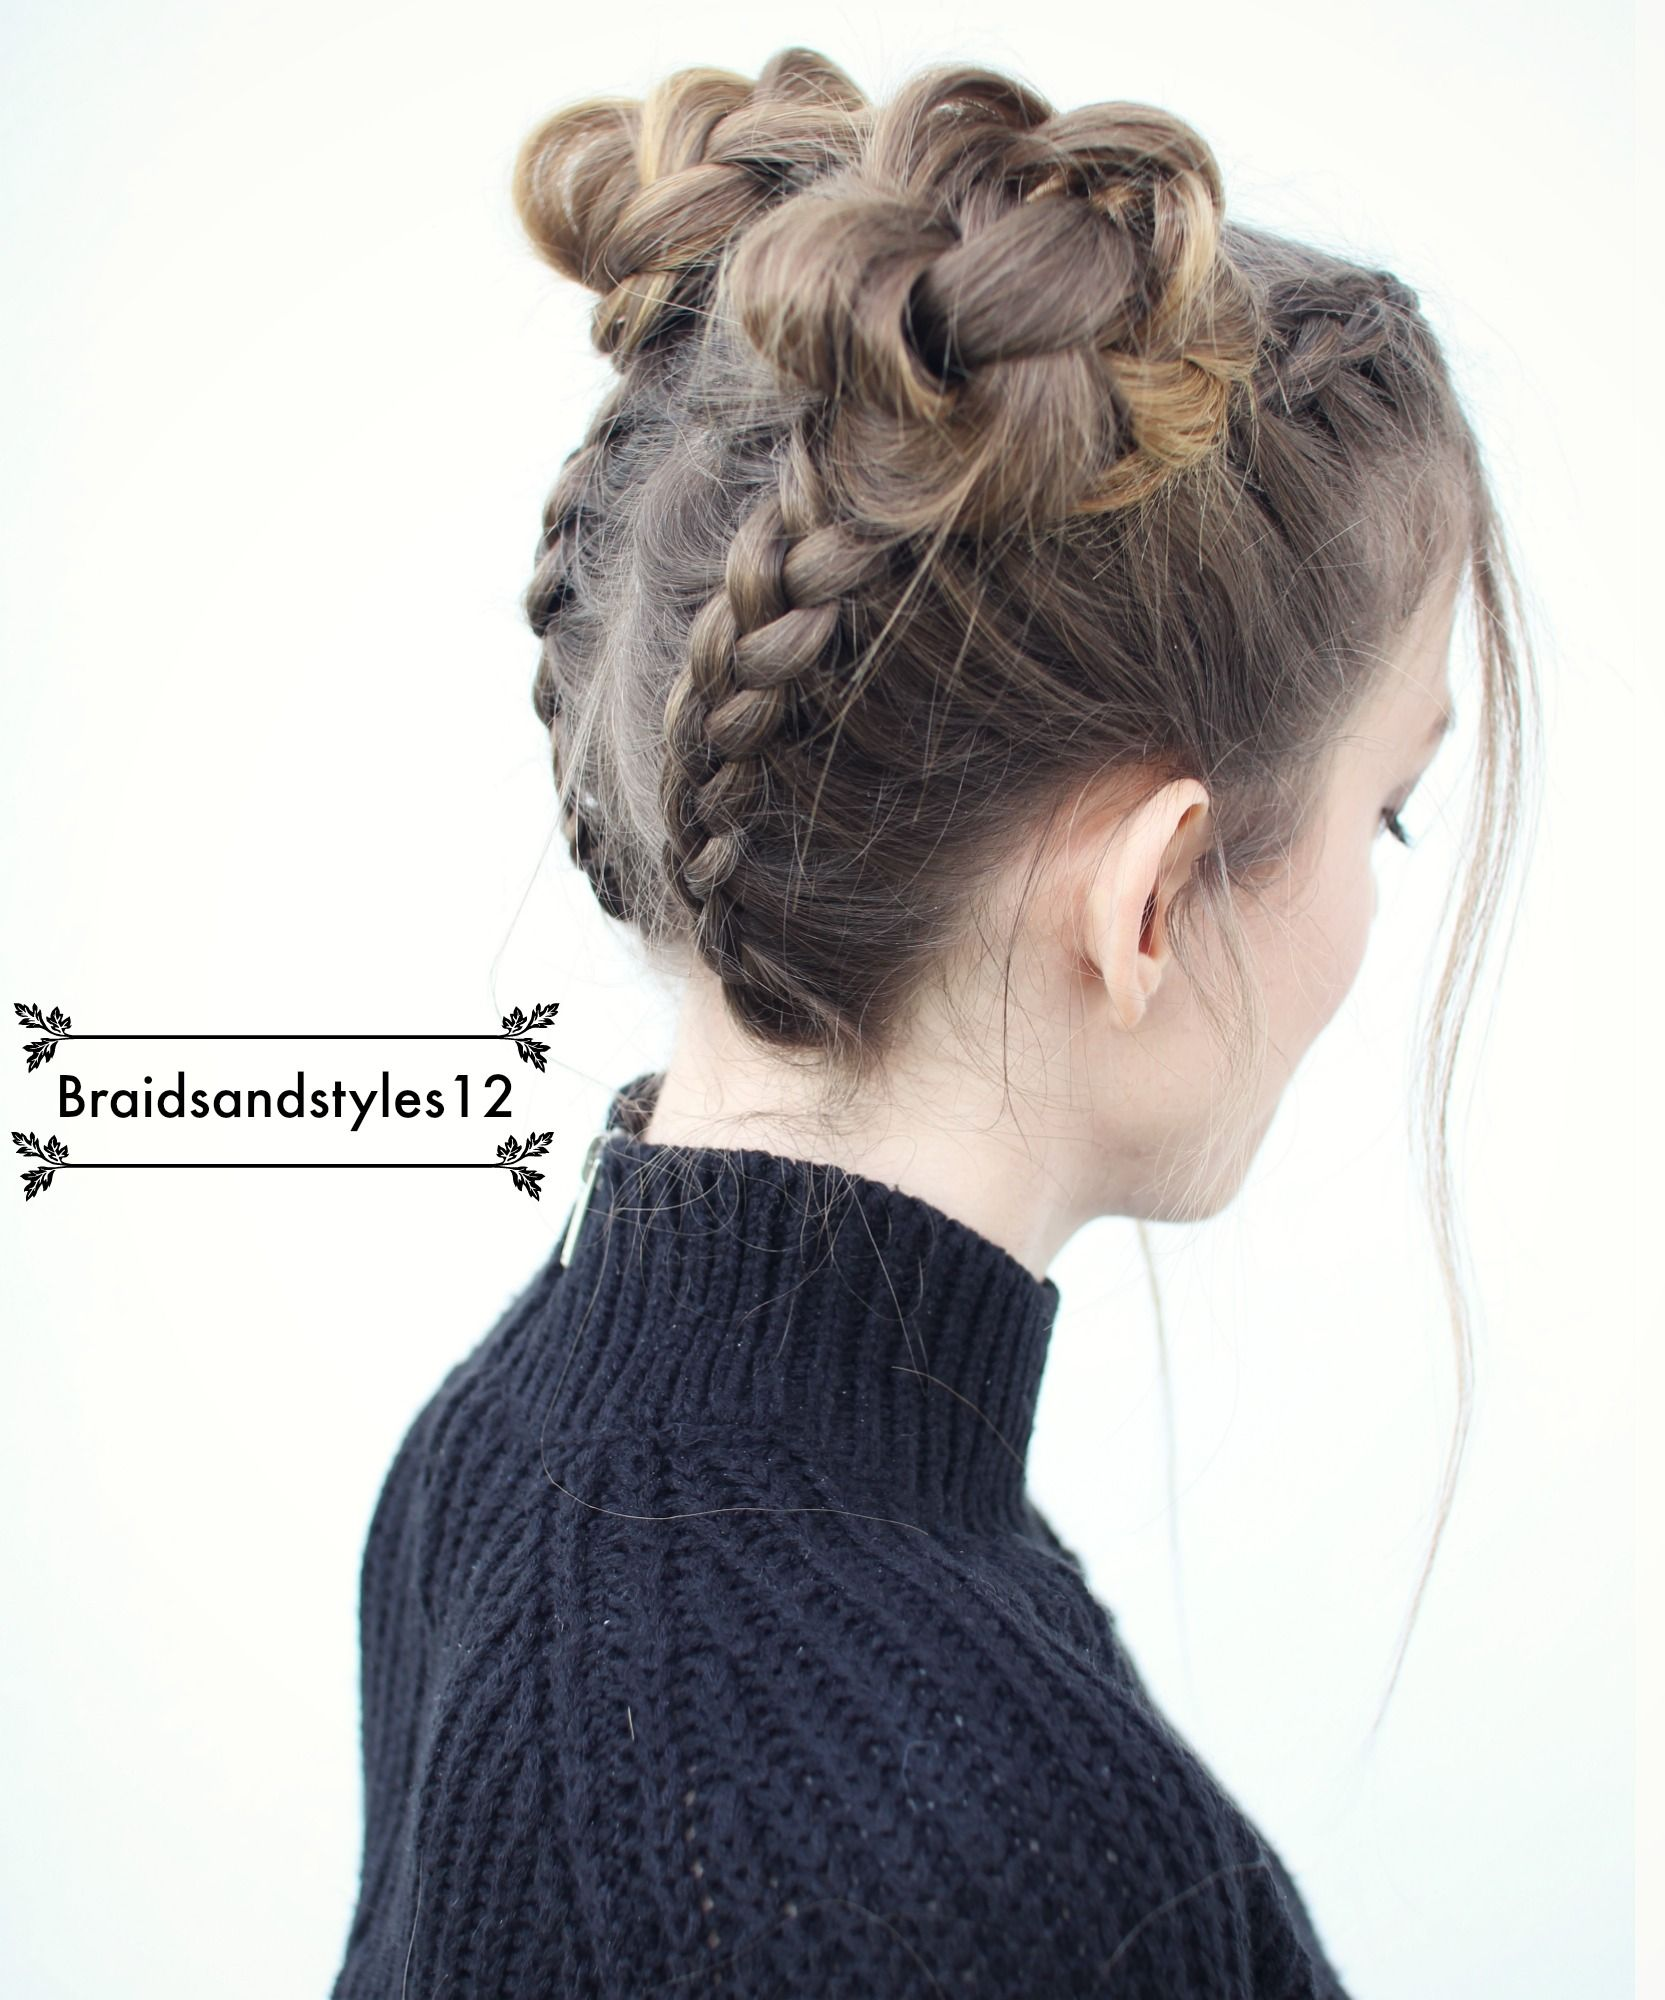 Upside Down Braided Pigtails Into Braided Space Buns By Braidsandstyles12 Tutorial Https Www Youtube C Dance Hairstyles Hair Styles Braids For Short Hair